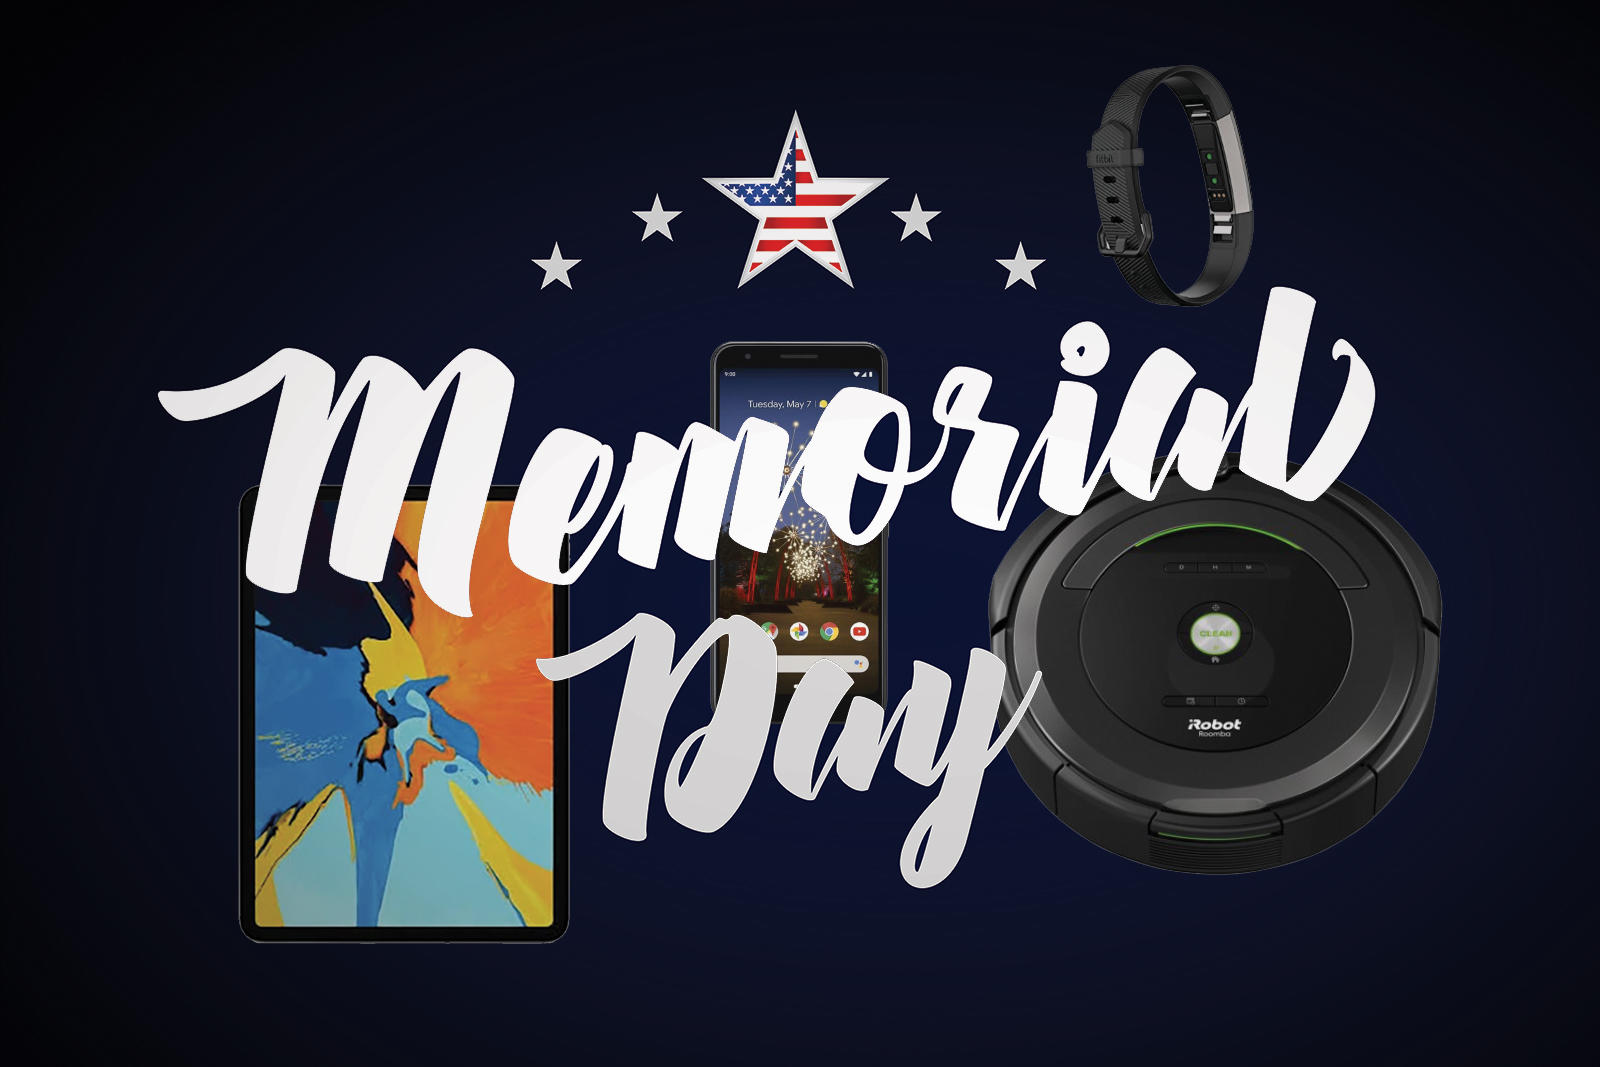 The Best Memorial Day 2019 Deals And Discounts On Tech Products